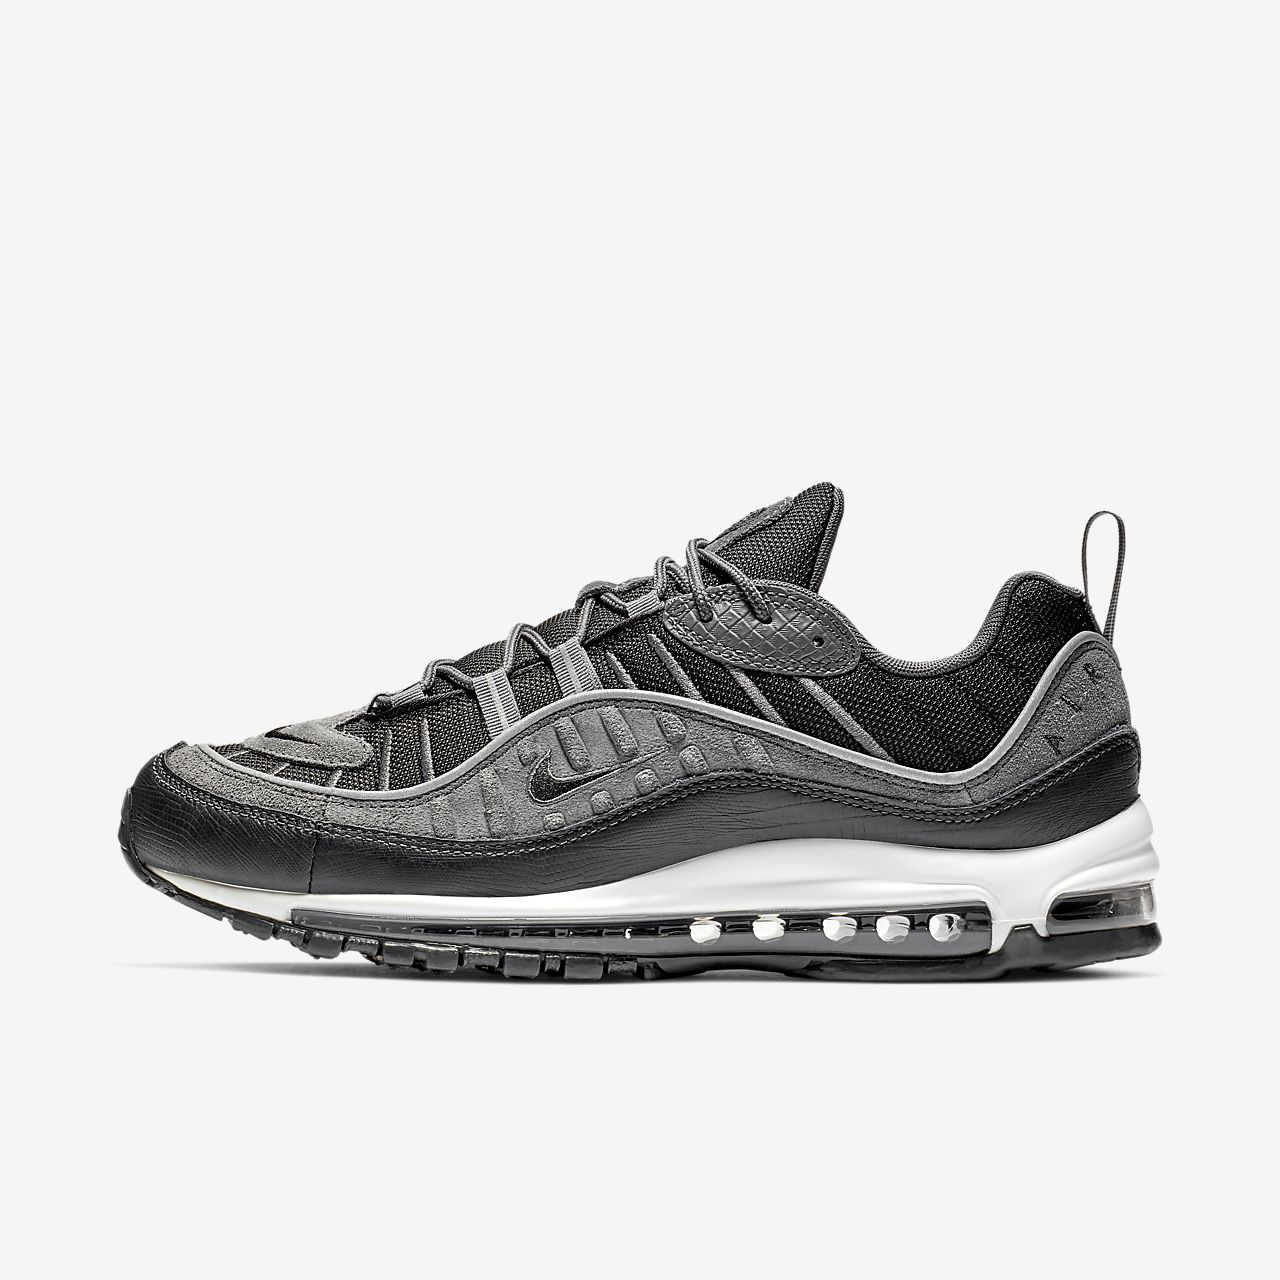 ... Chaussure Nike Air Max 98 SE pour Homme